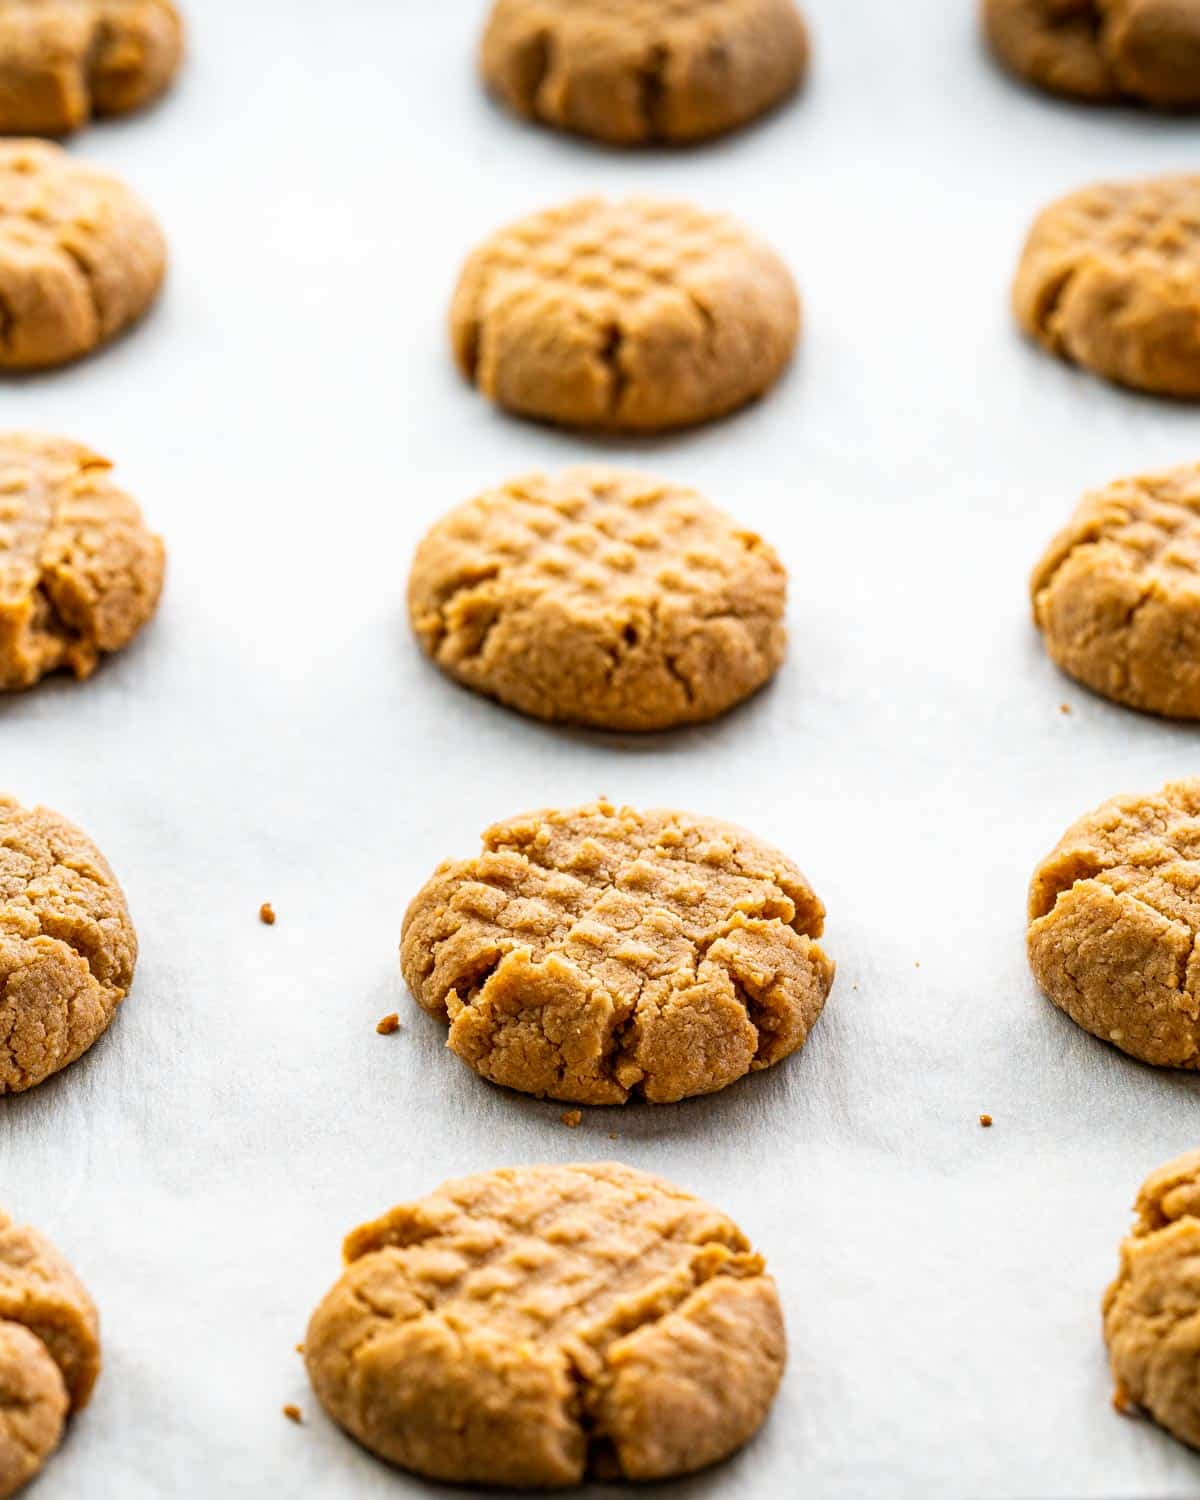 peanut butter cookies fresh out of the oven on a baking sheet.